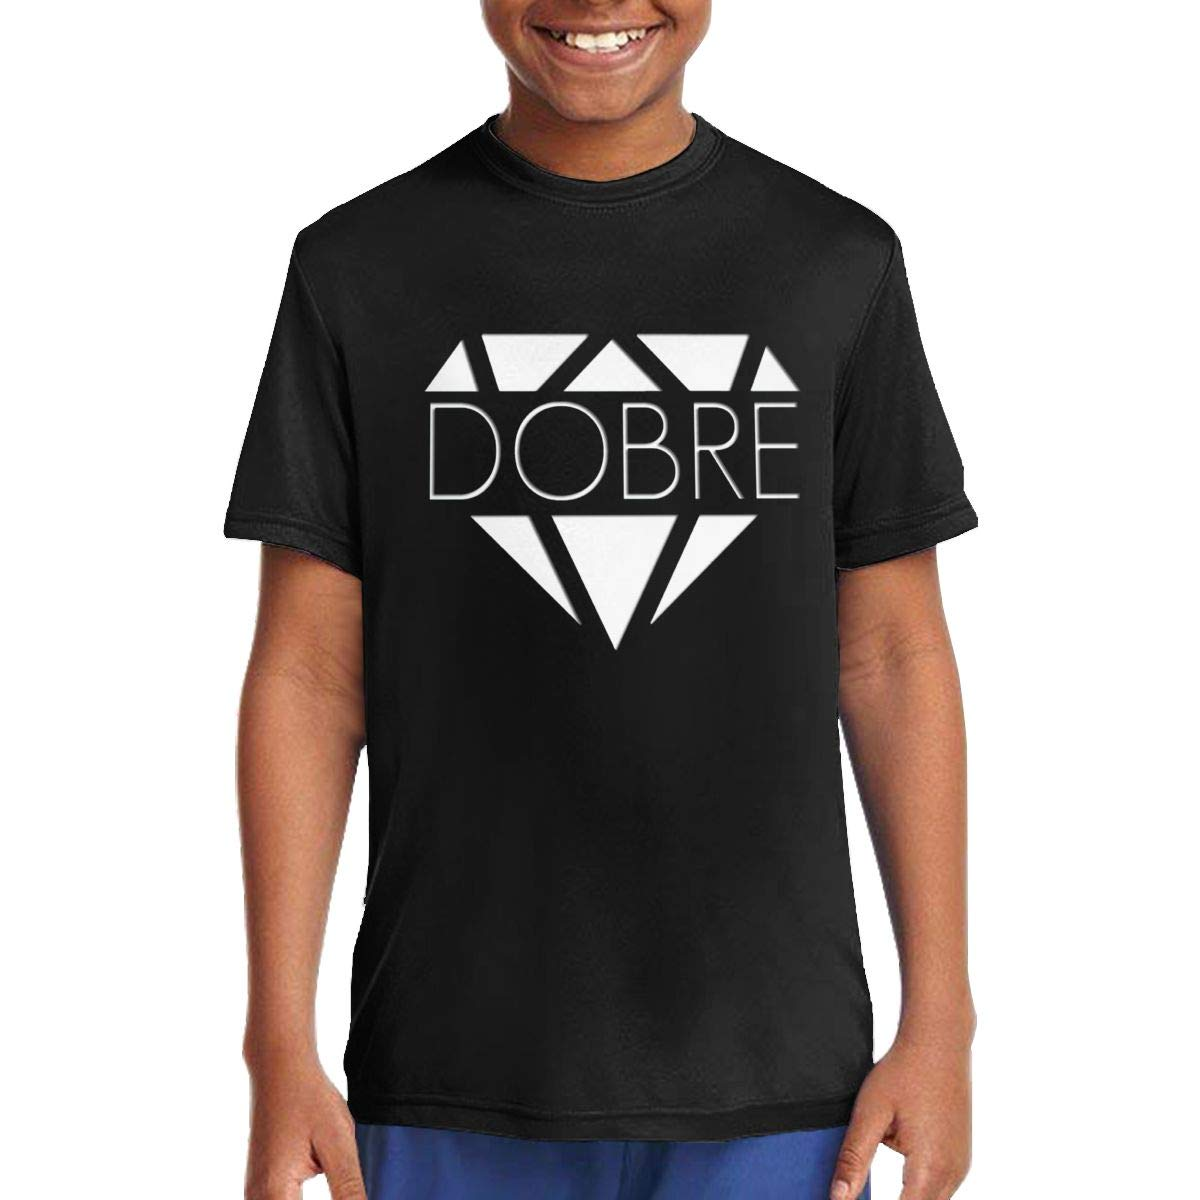 Dobre Brothers Logo Music//Rock//Singer Cotton Shirt Round Neck Short Sleeve T-Shirt for Teen Boys and Girls Classic Fit Black